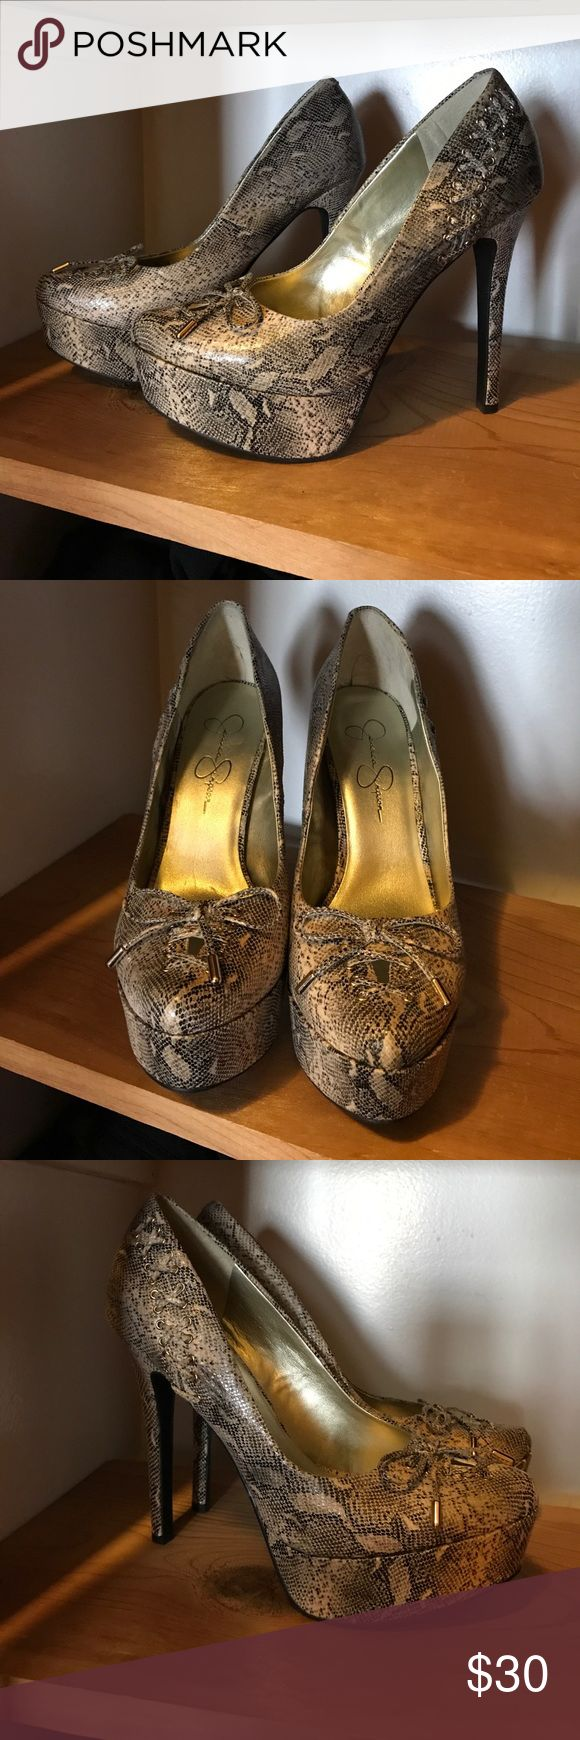 Jessica Simpson snakeskin pumps Jessica Simpson snakeskin pumps Jessica Simpson Shoes Heels